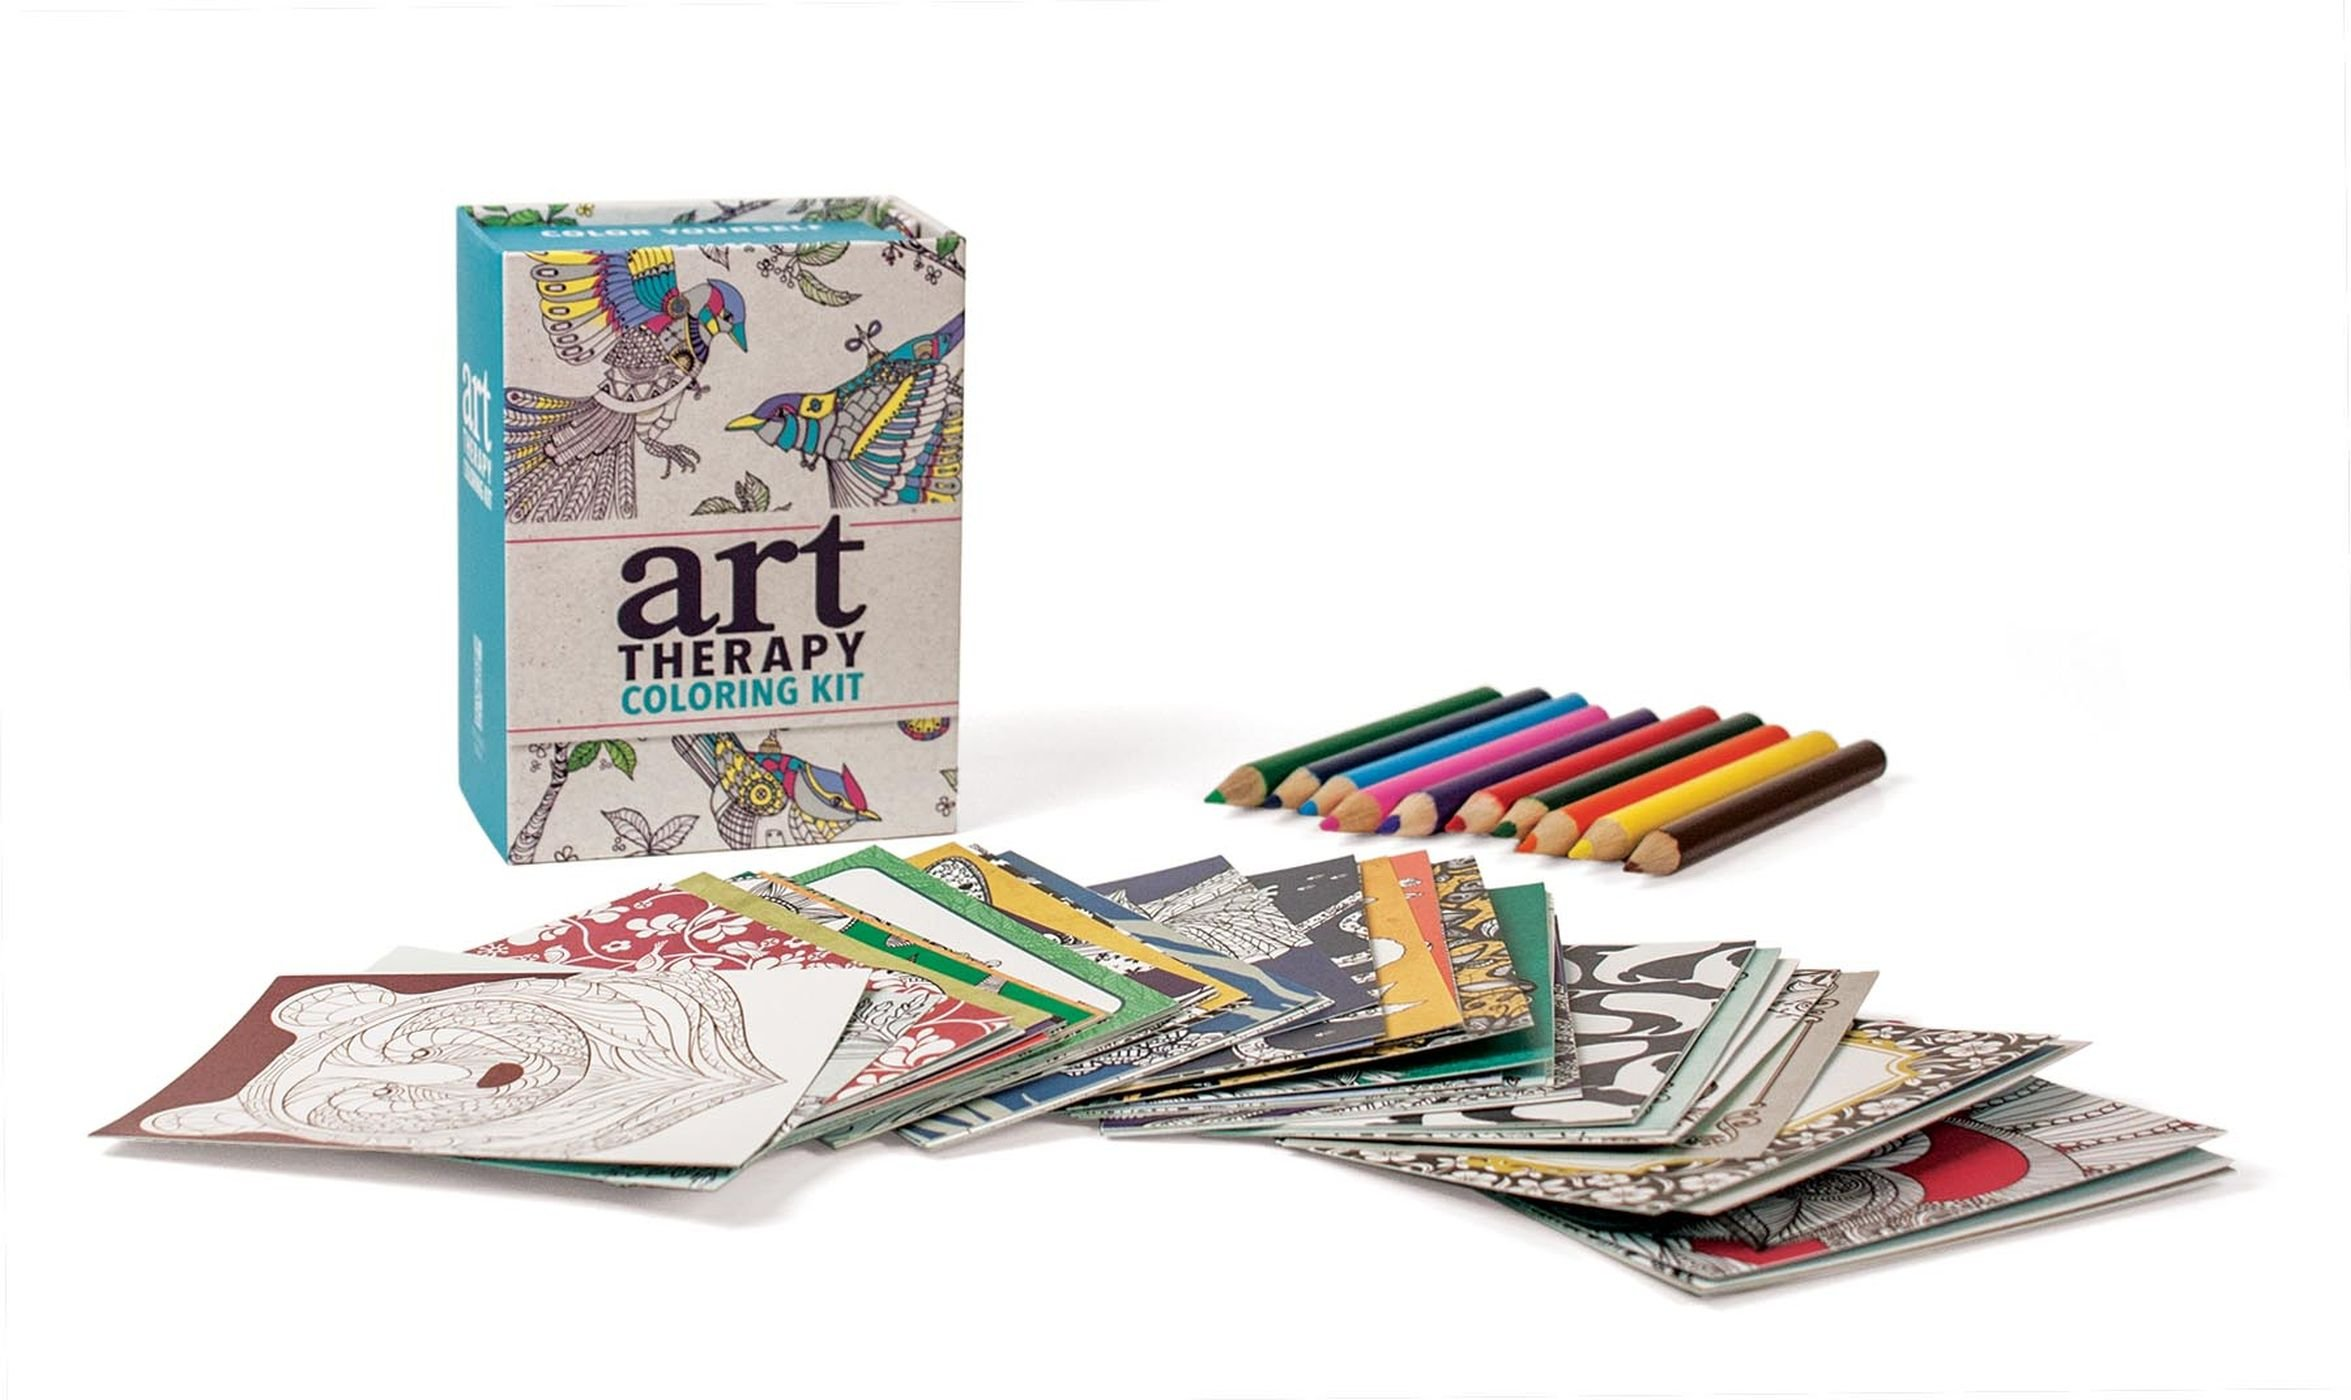 art therapy coloring kit miniature editions sam loman 9780762460564 amazoncom books